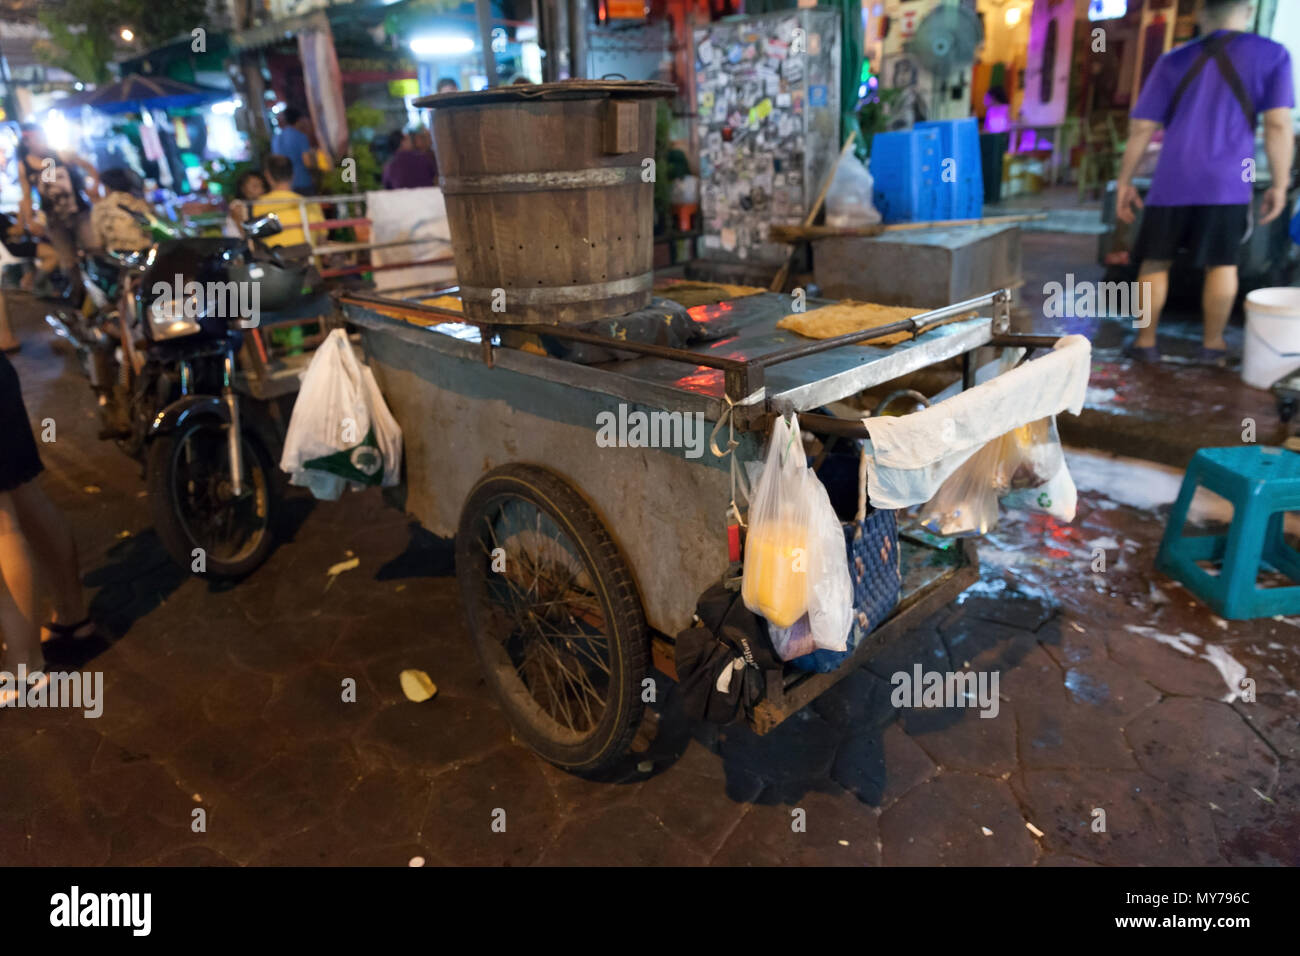 View of a stall attachment arranged in a messy way. - Stock Image